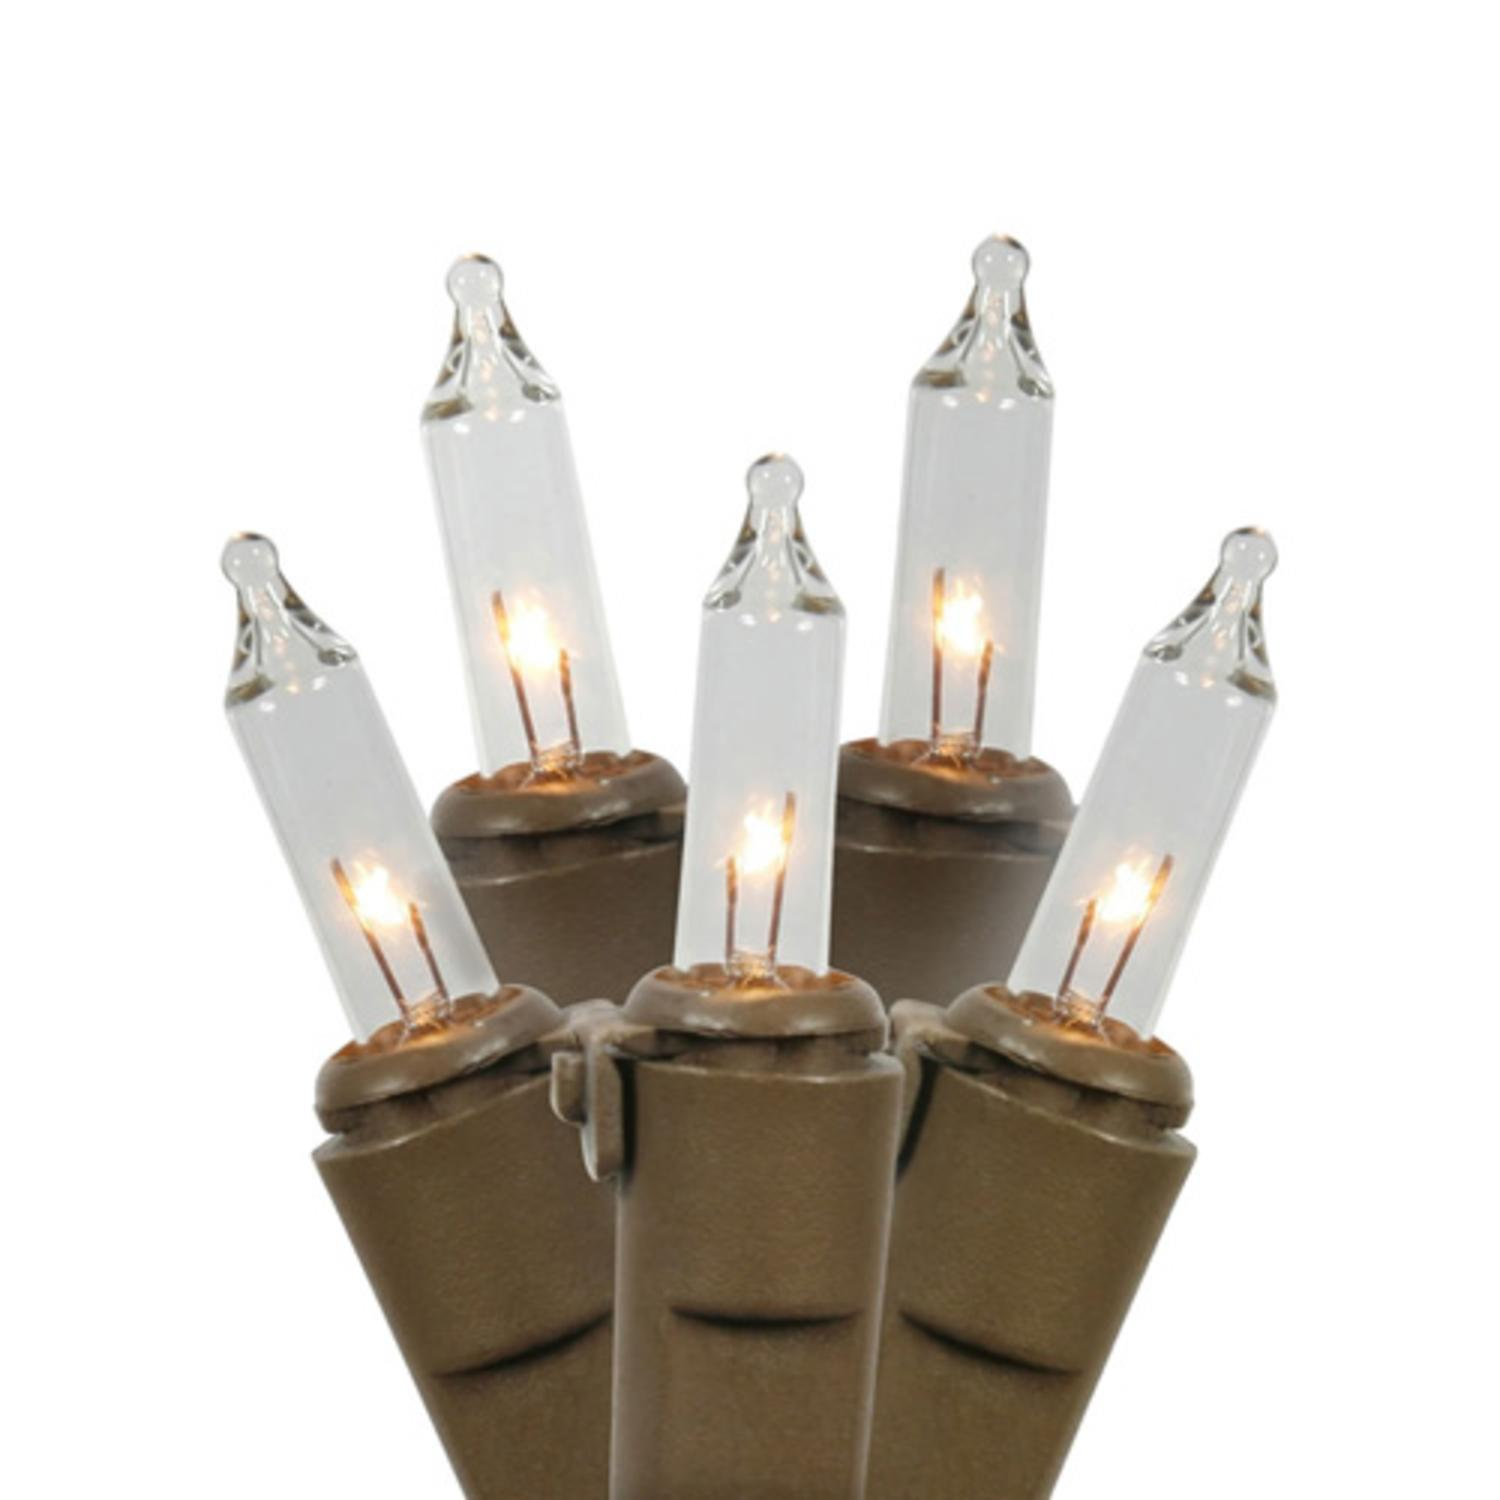 Set of 100 Clear Mini Christmas Lights - Brown Wire